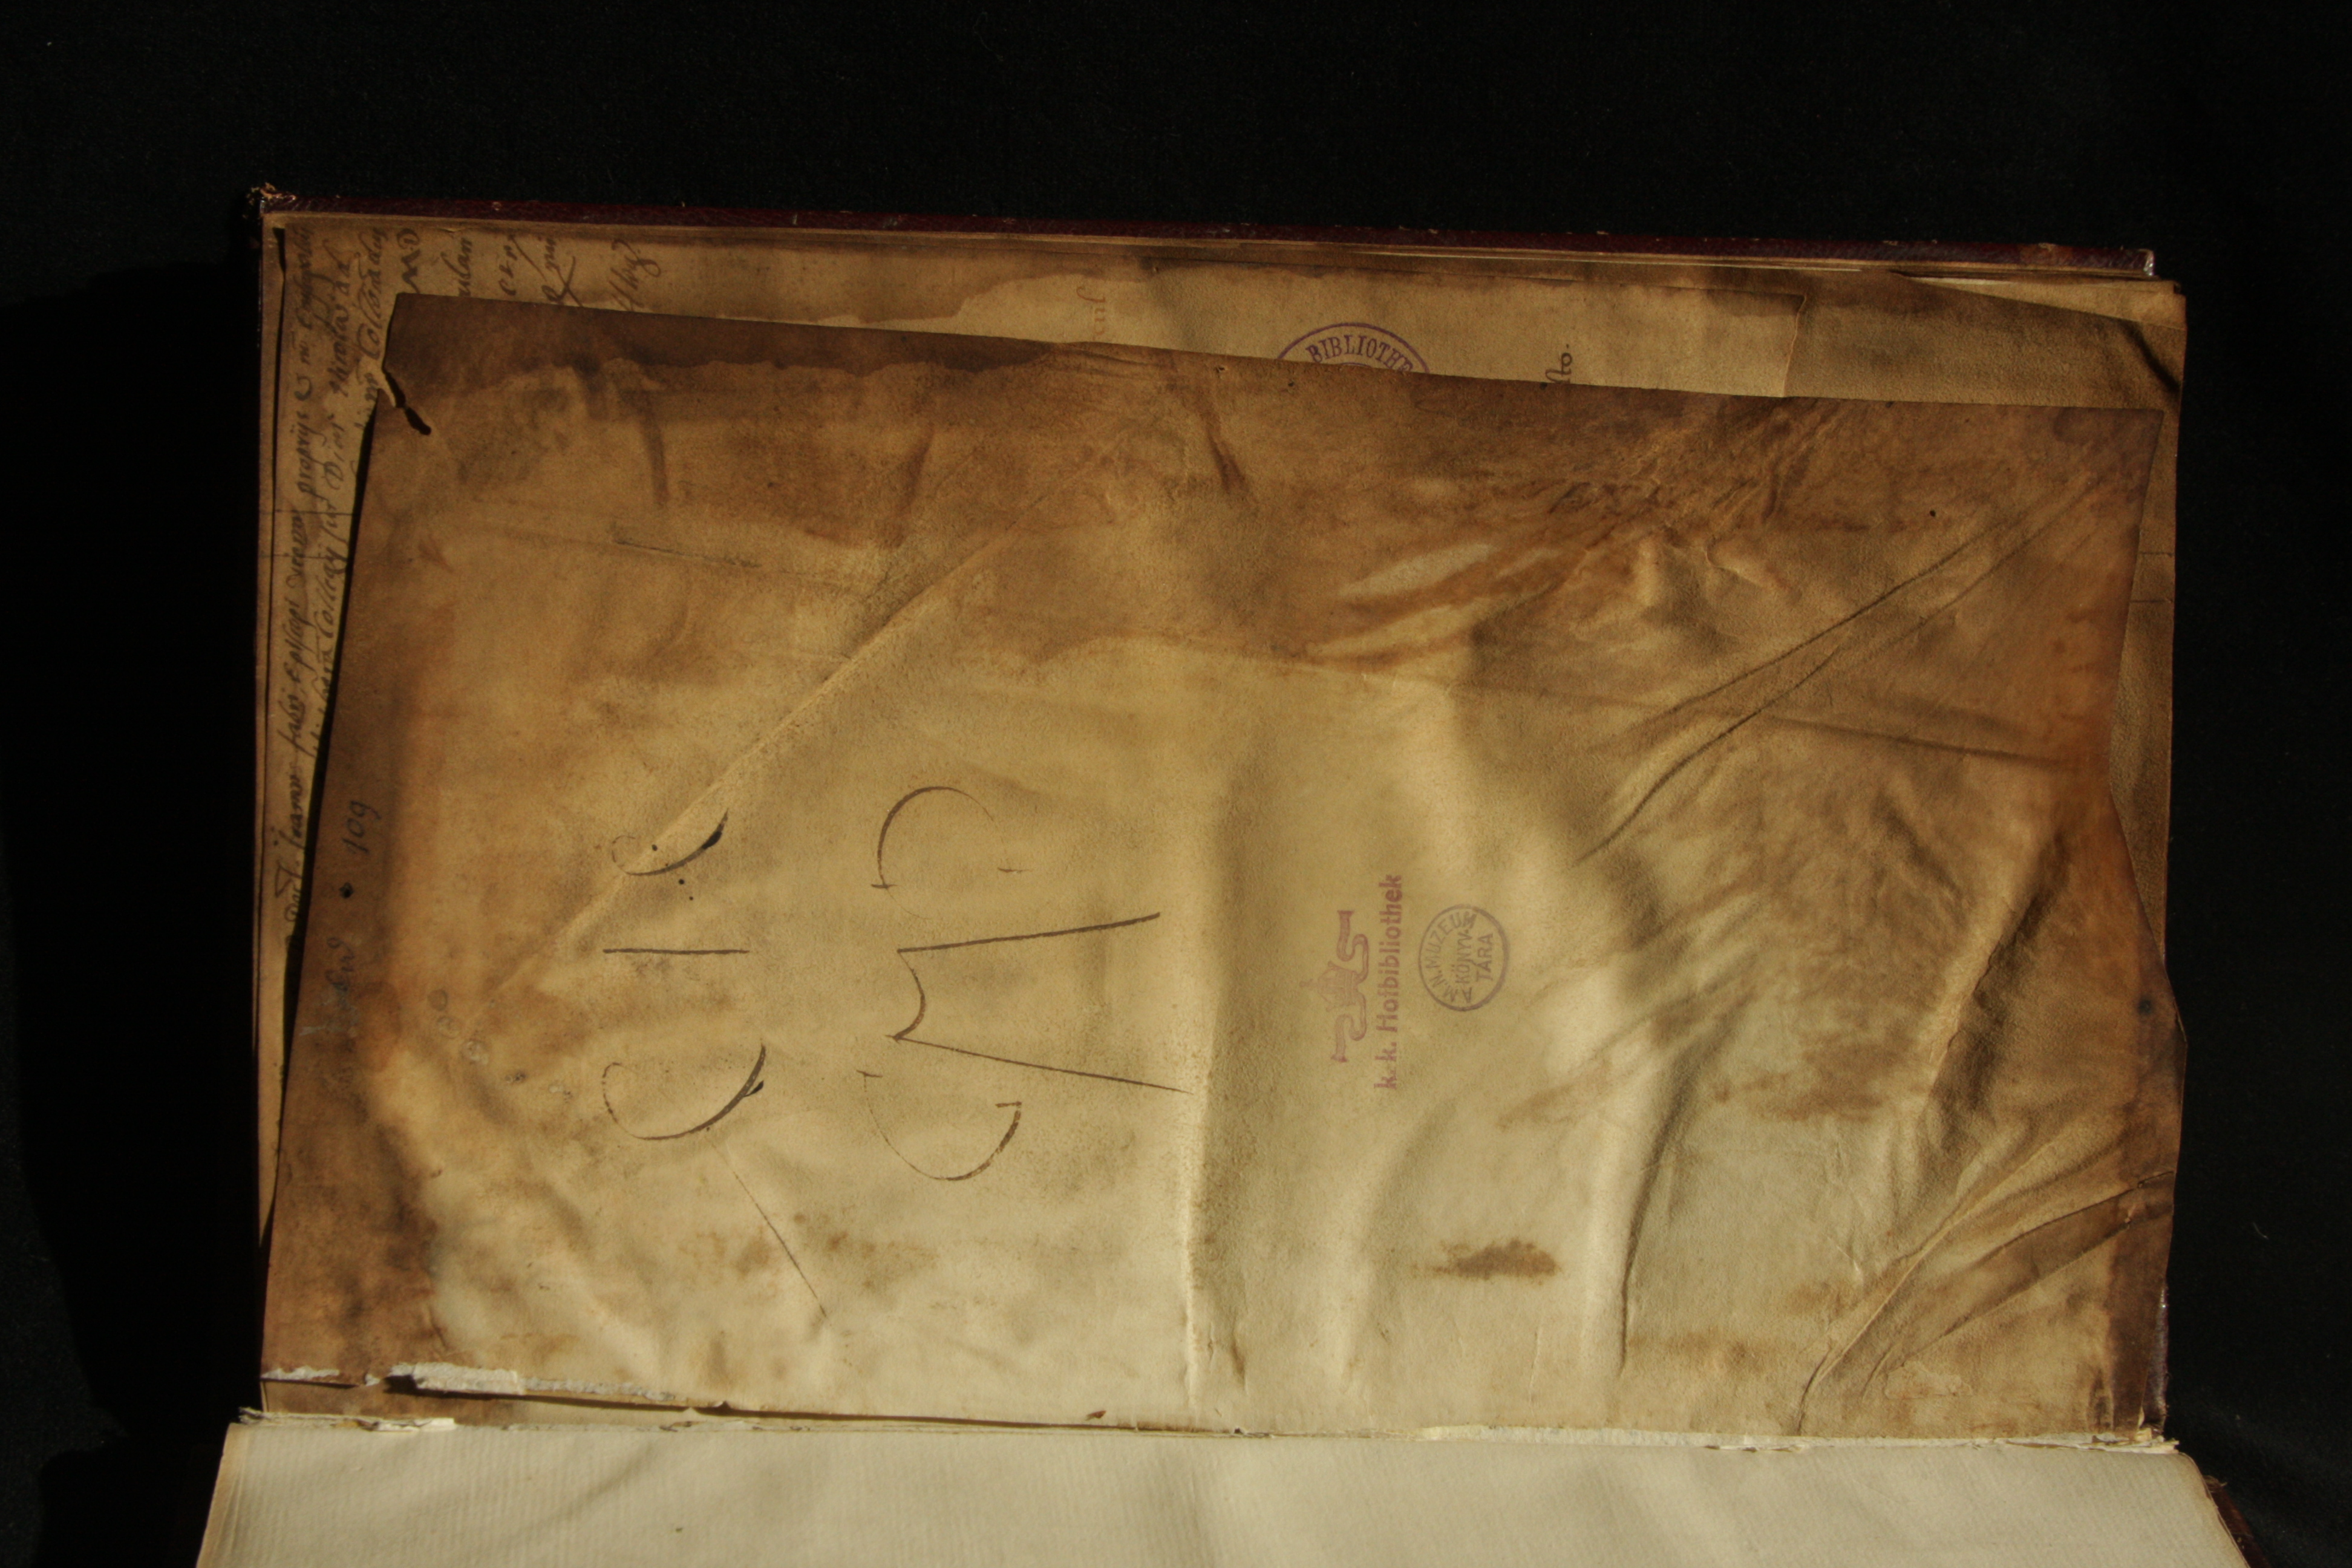 Parchment flyleaf from the endleaves at the left board, with an inscription by Johannes Cuspinianus on the recto